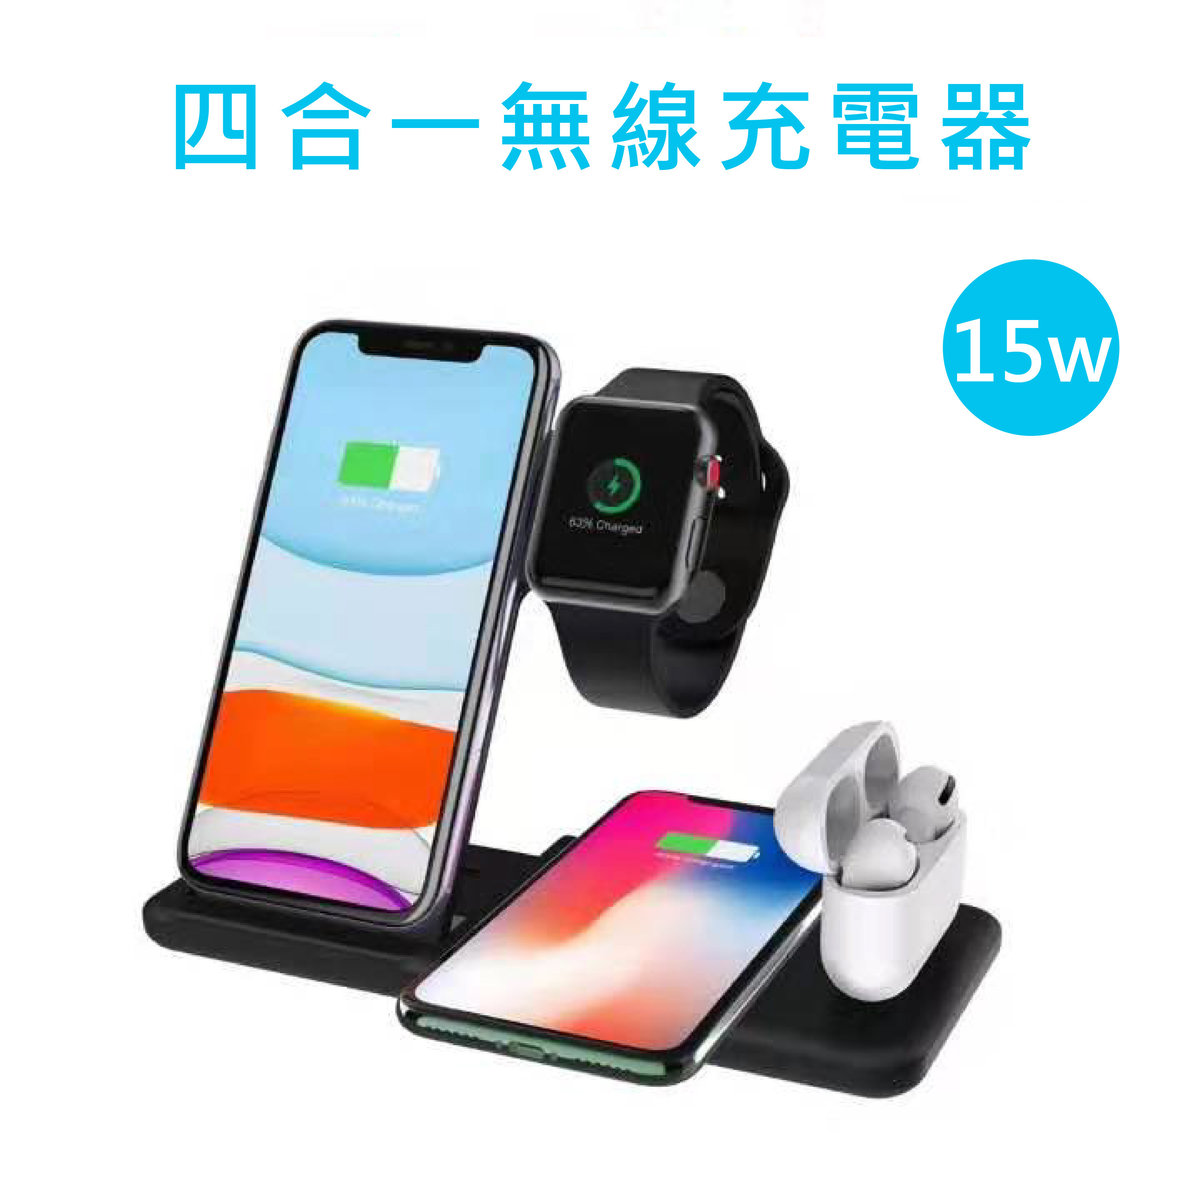 4 in 1 wireless charger I phone*2 + I watch+ Airpods USE LIGHTING